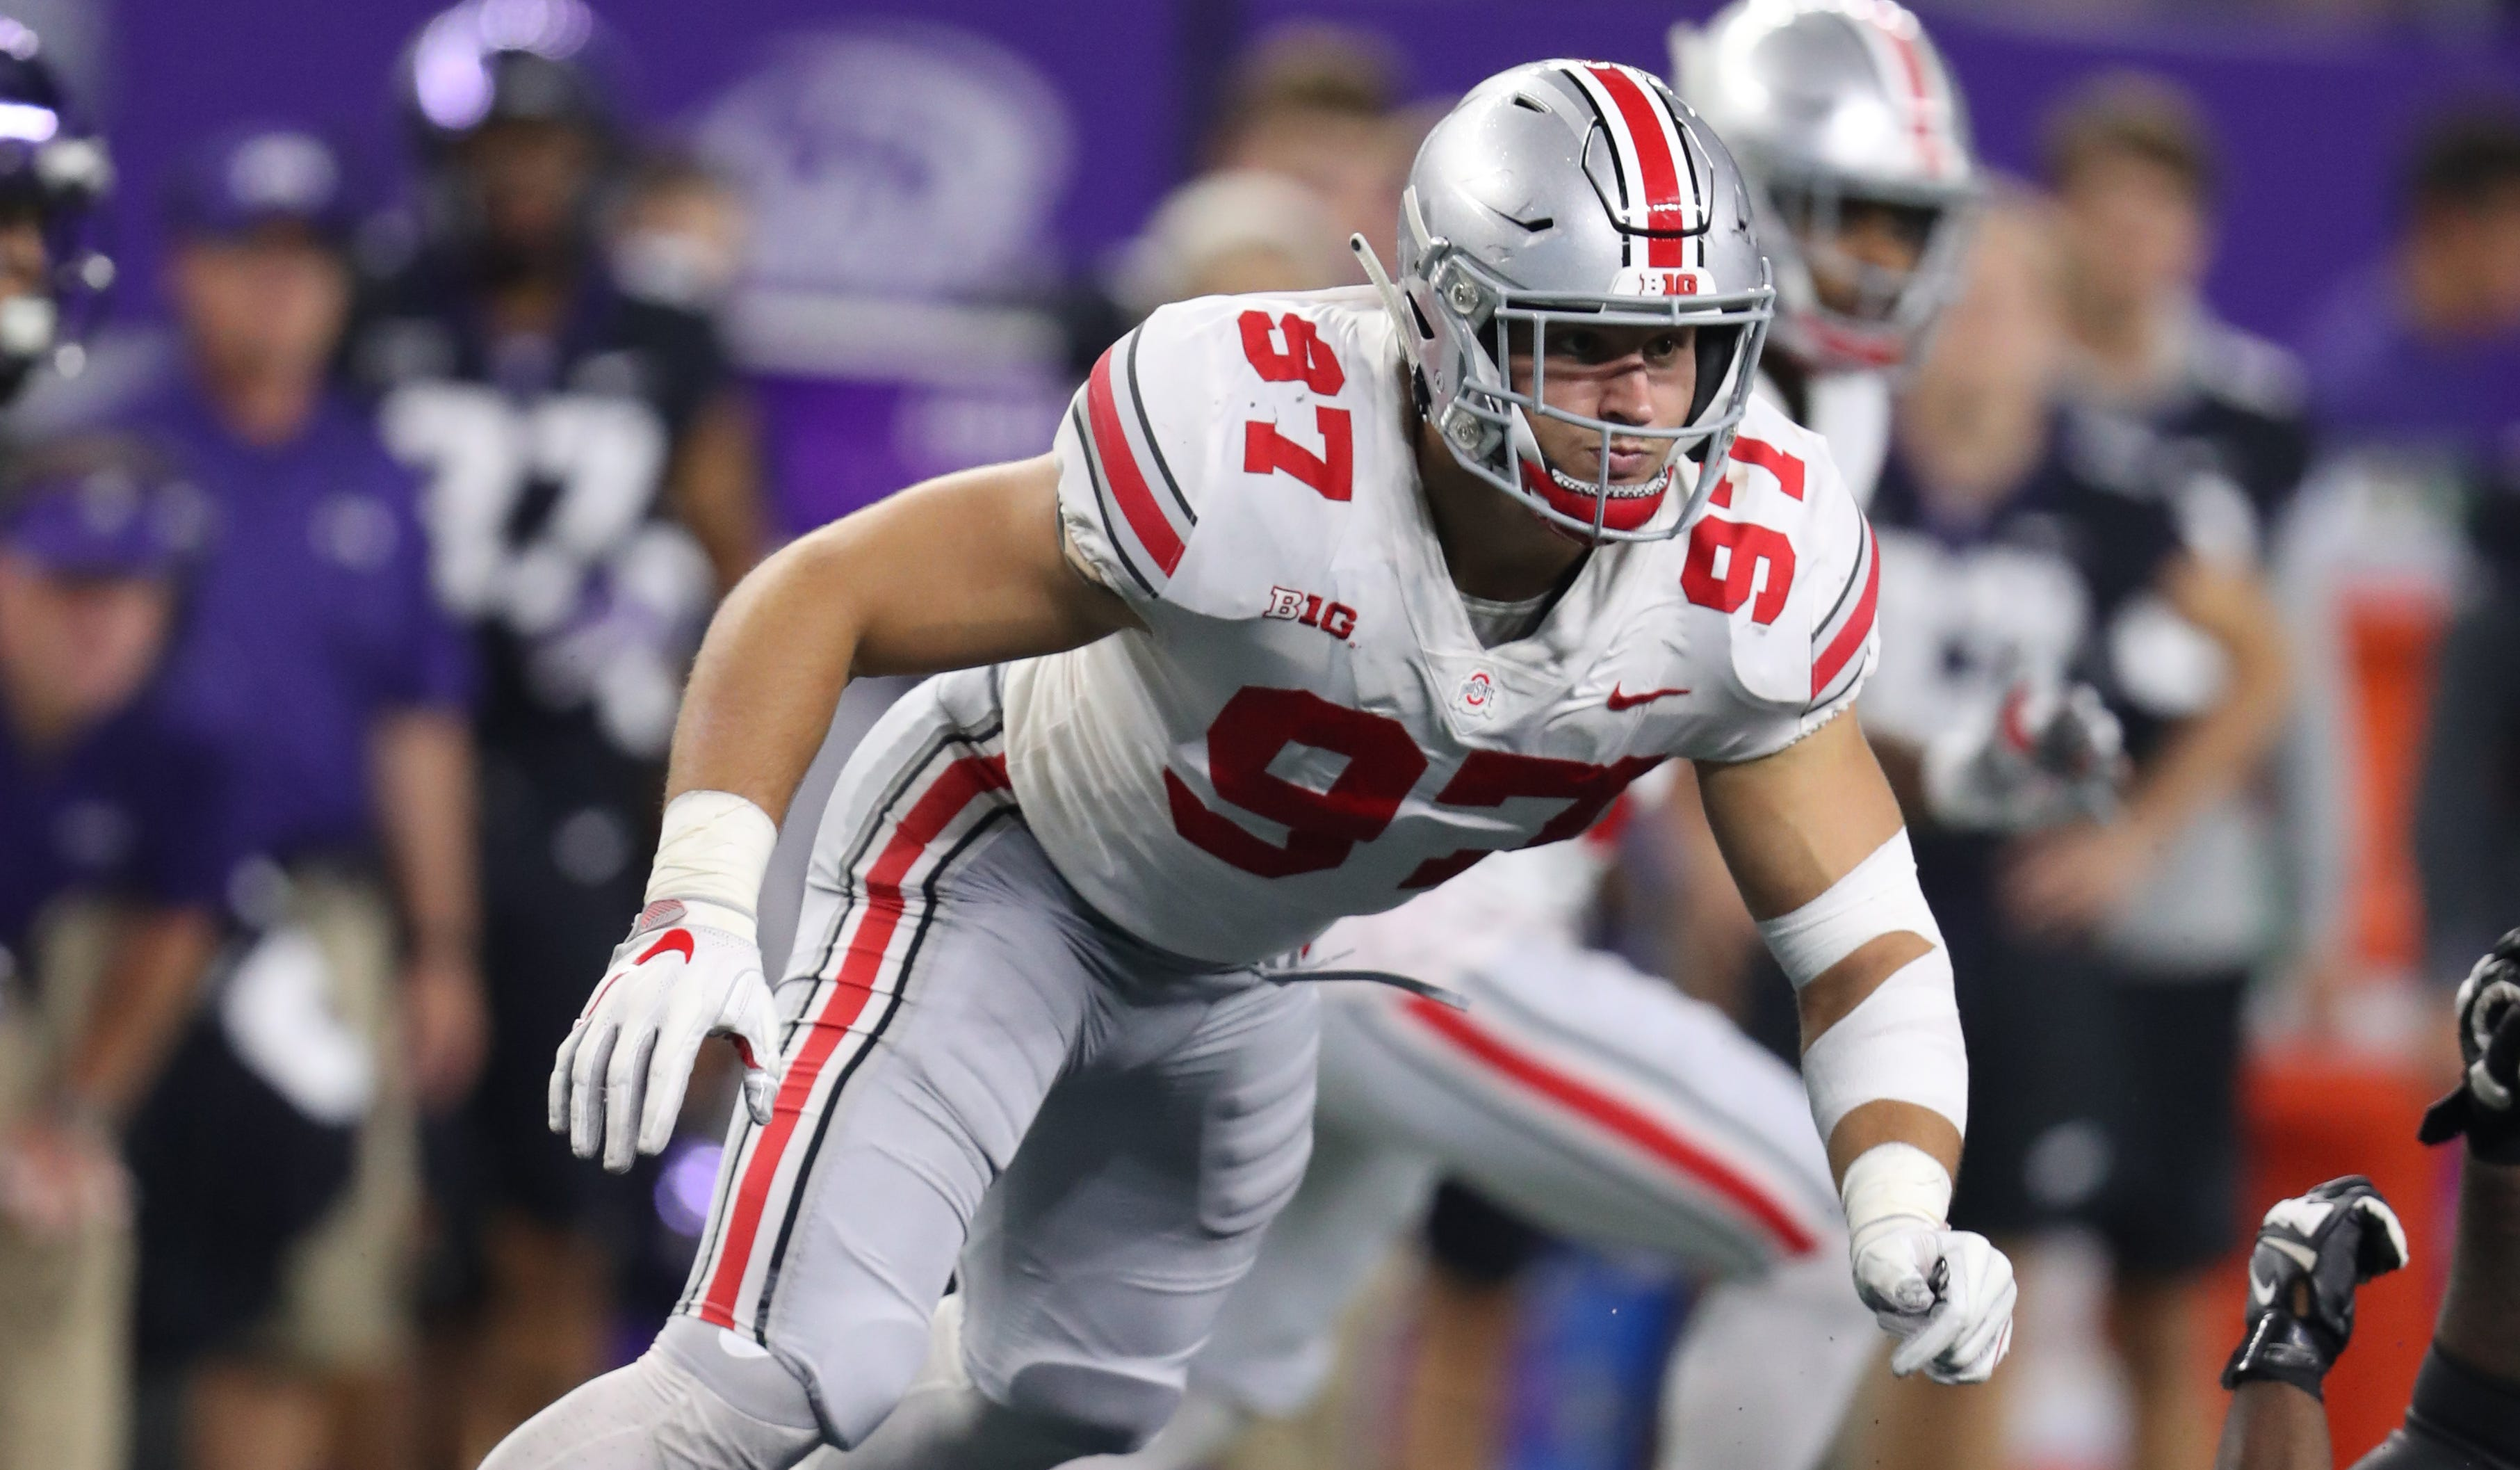 In a week and a half, we'll know where Nick Bosa will go in the NFL draft.